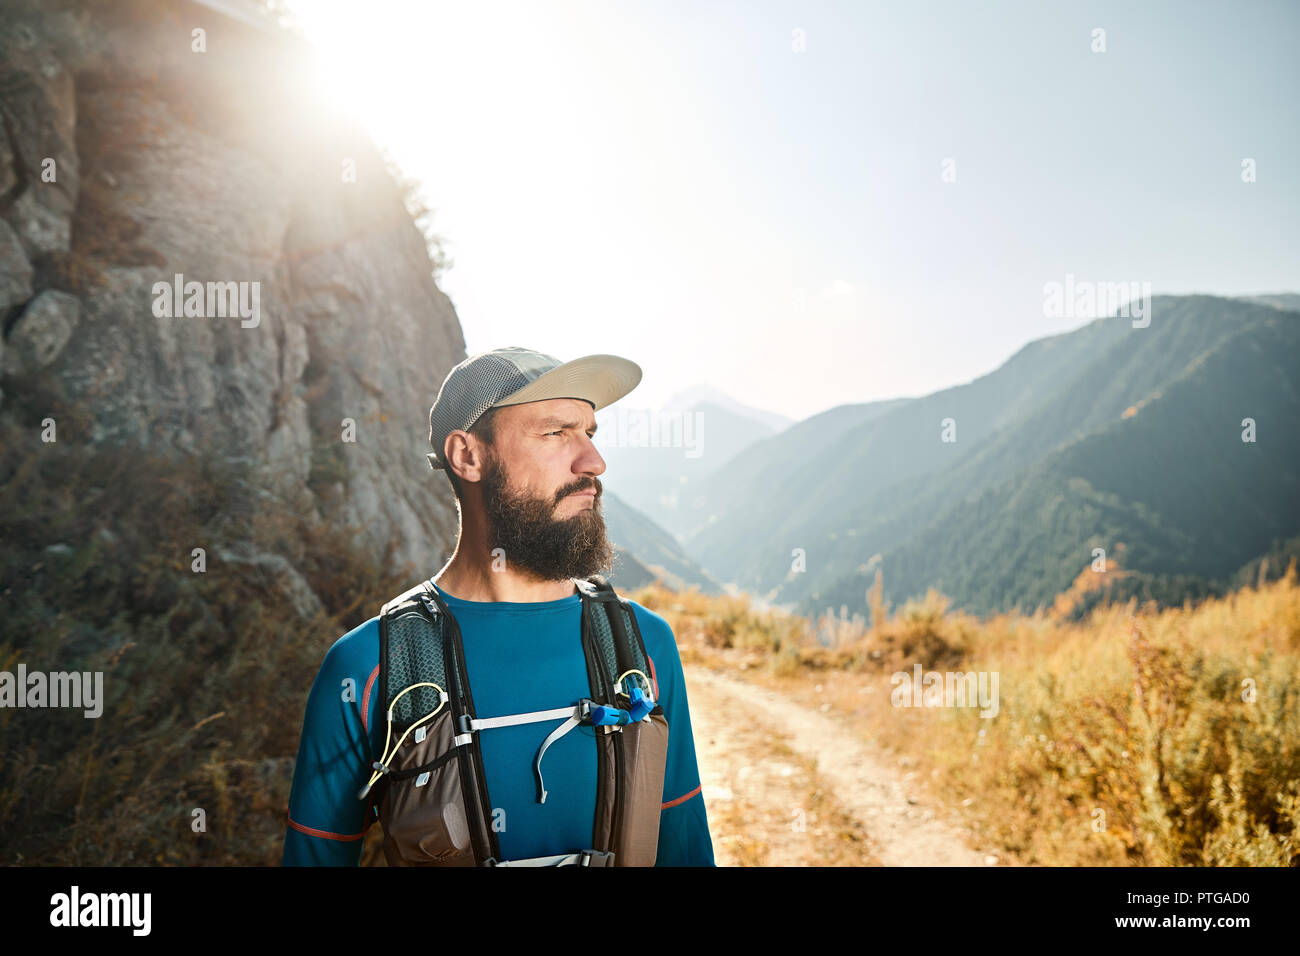 Portrait of bearded runner athlete with backpack in the mountains at sunrise - Stock Image